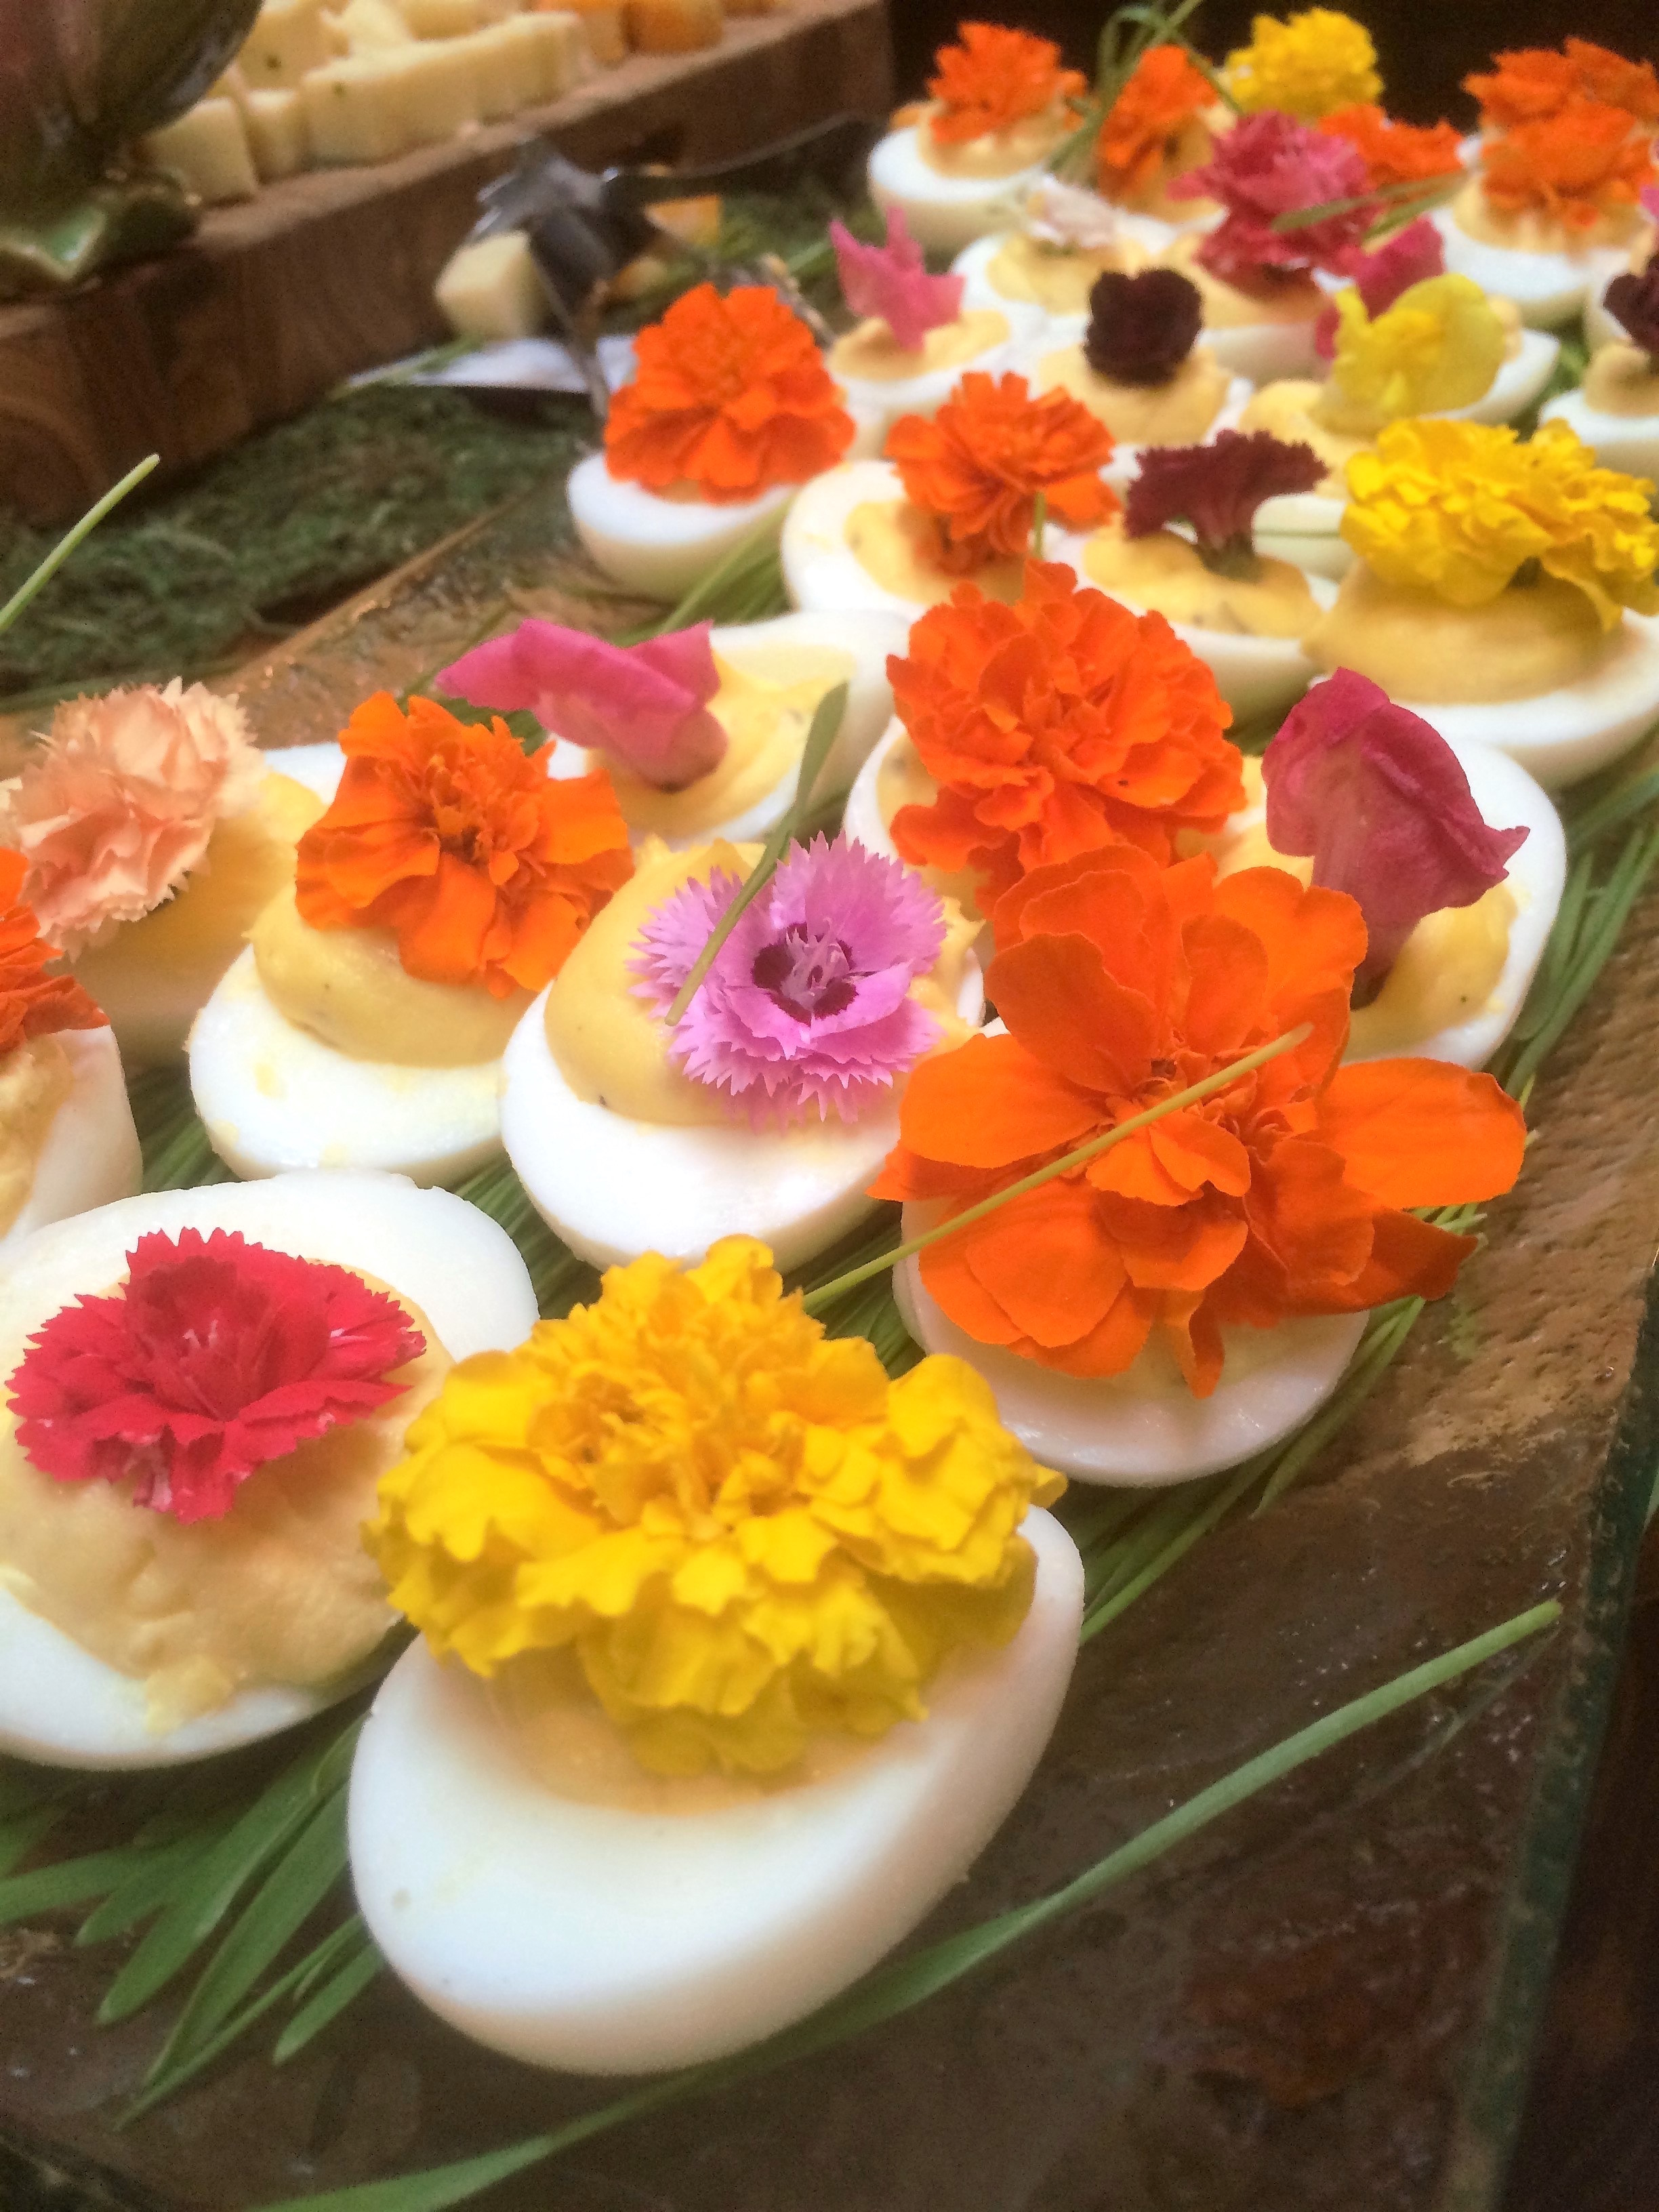 //rochestercaterer.com/wp-content/uploads/2015/04/Eggs-deviled-flowers1.jpeg